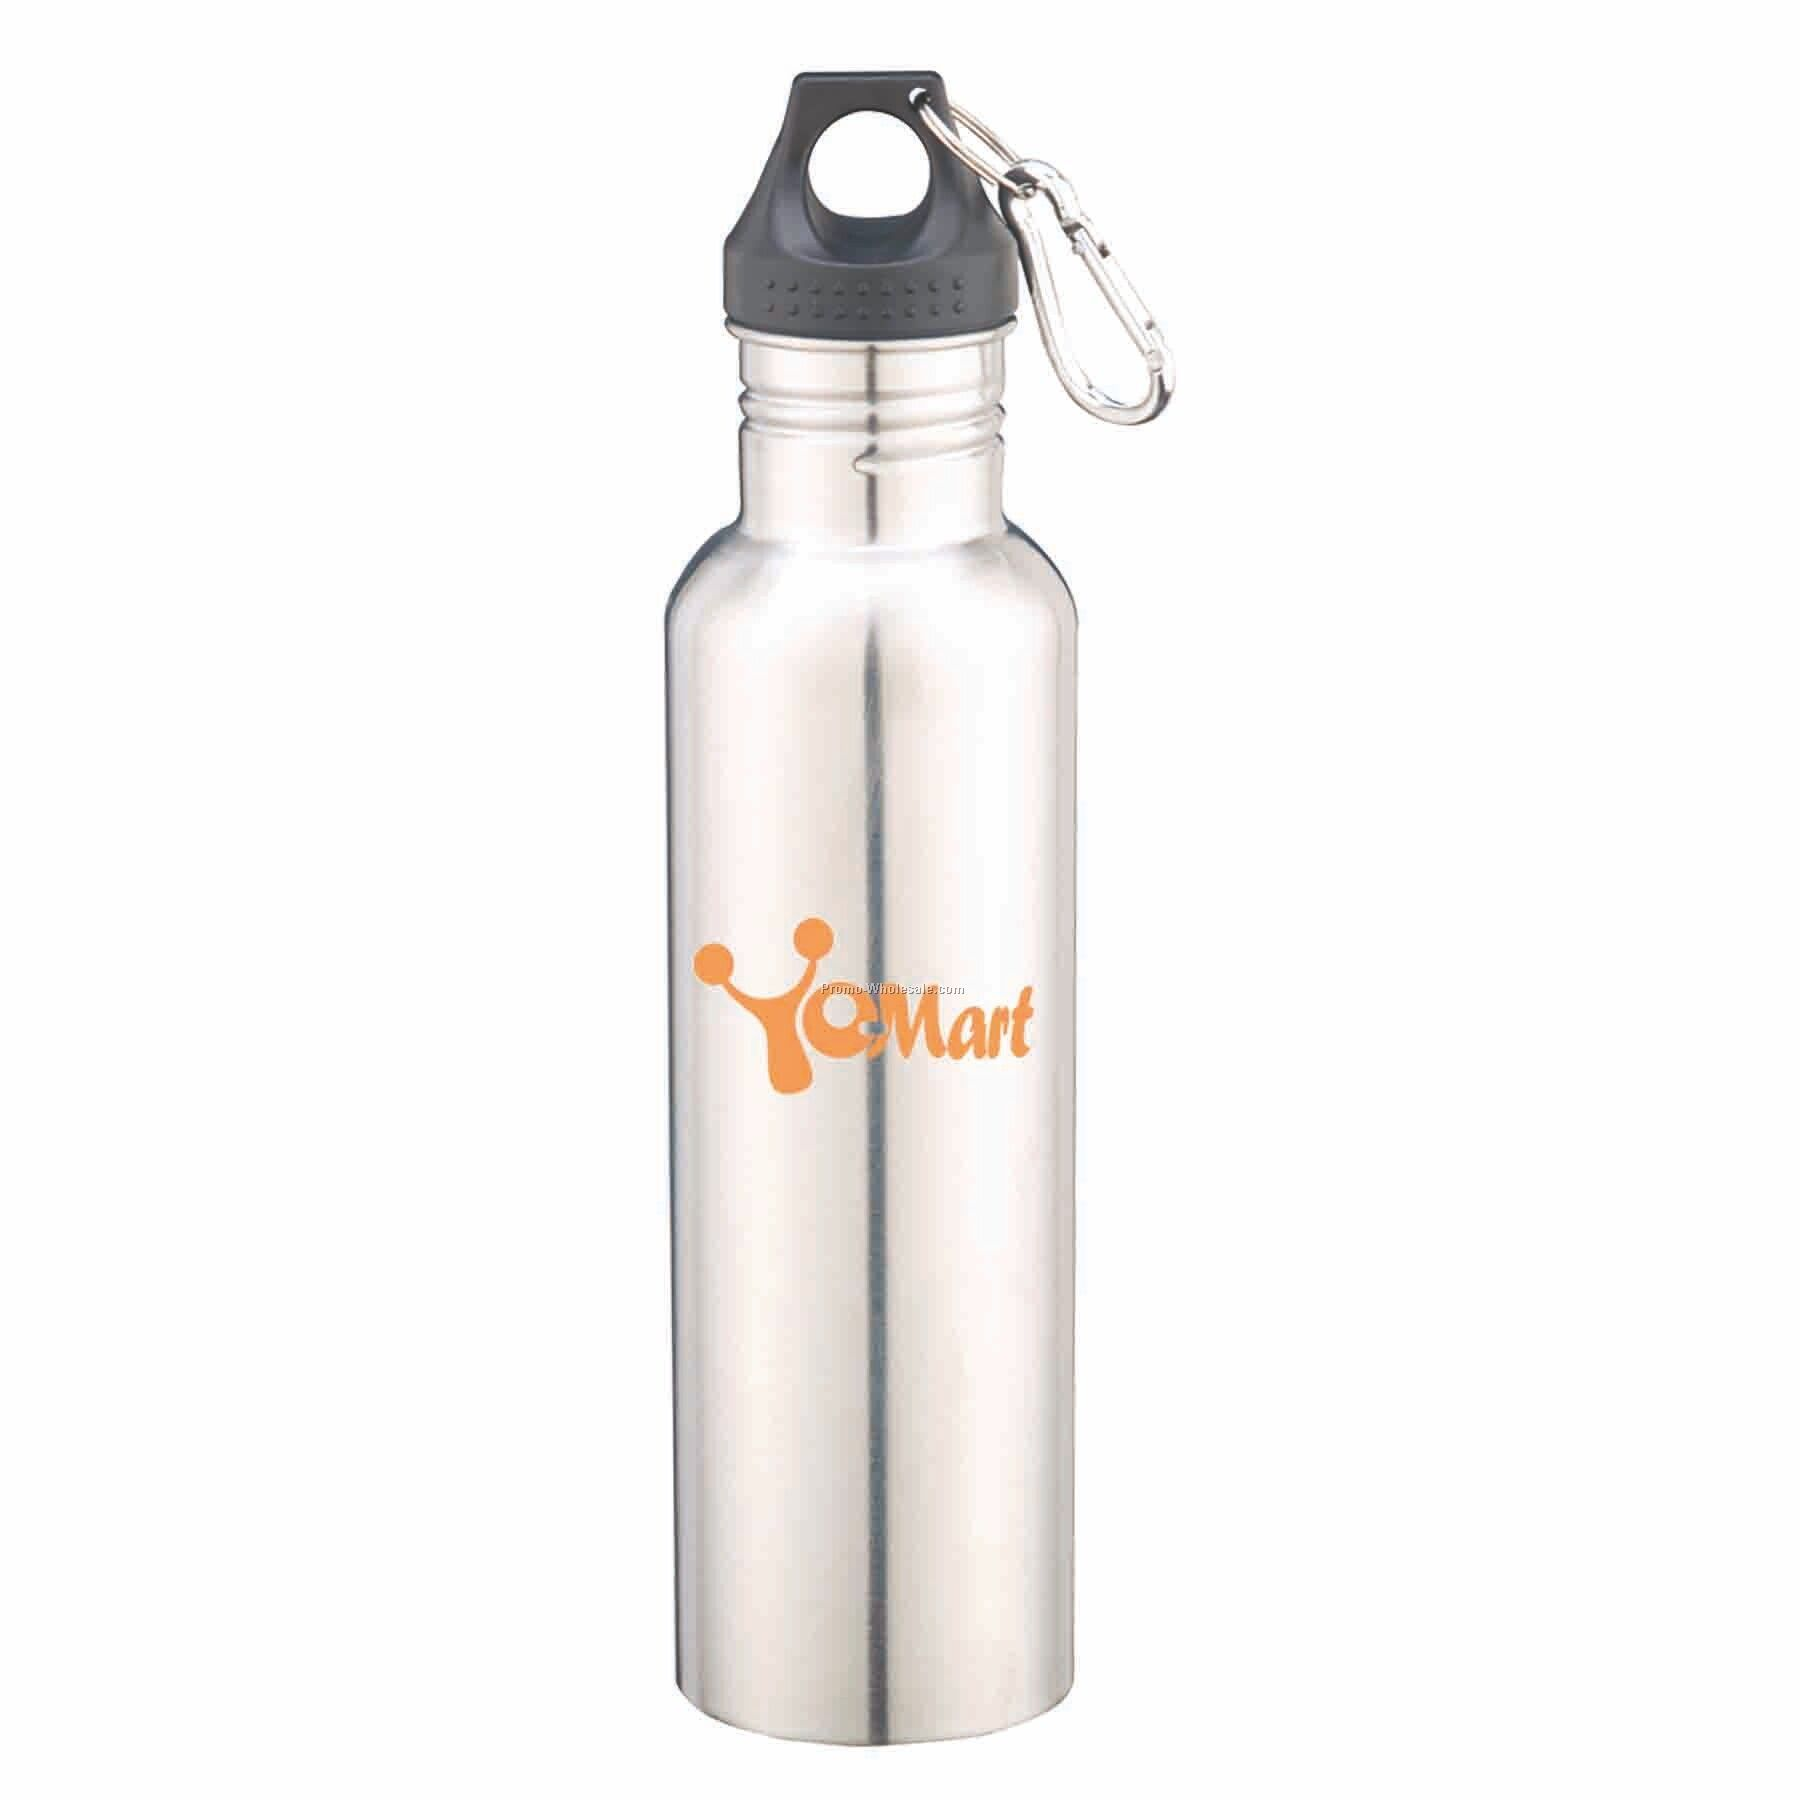 27 Oz Stainless Steel Bottle, Silver